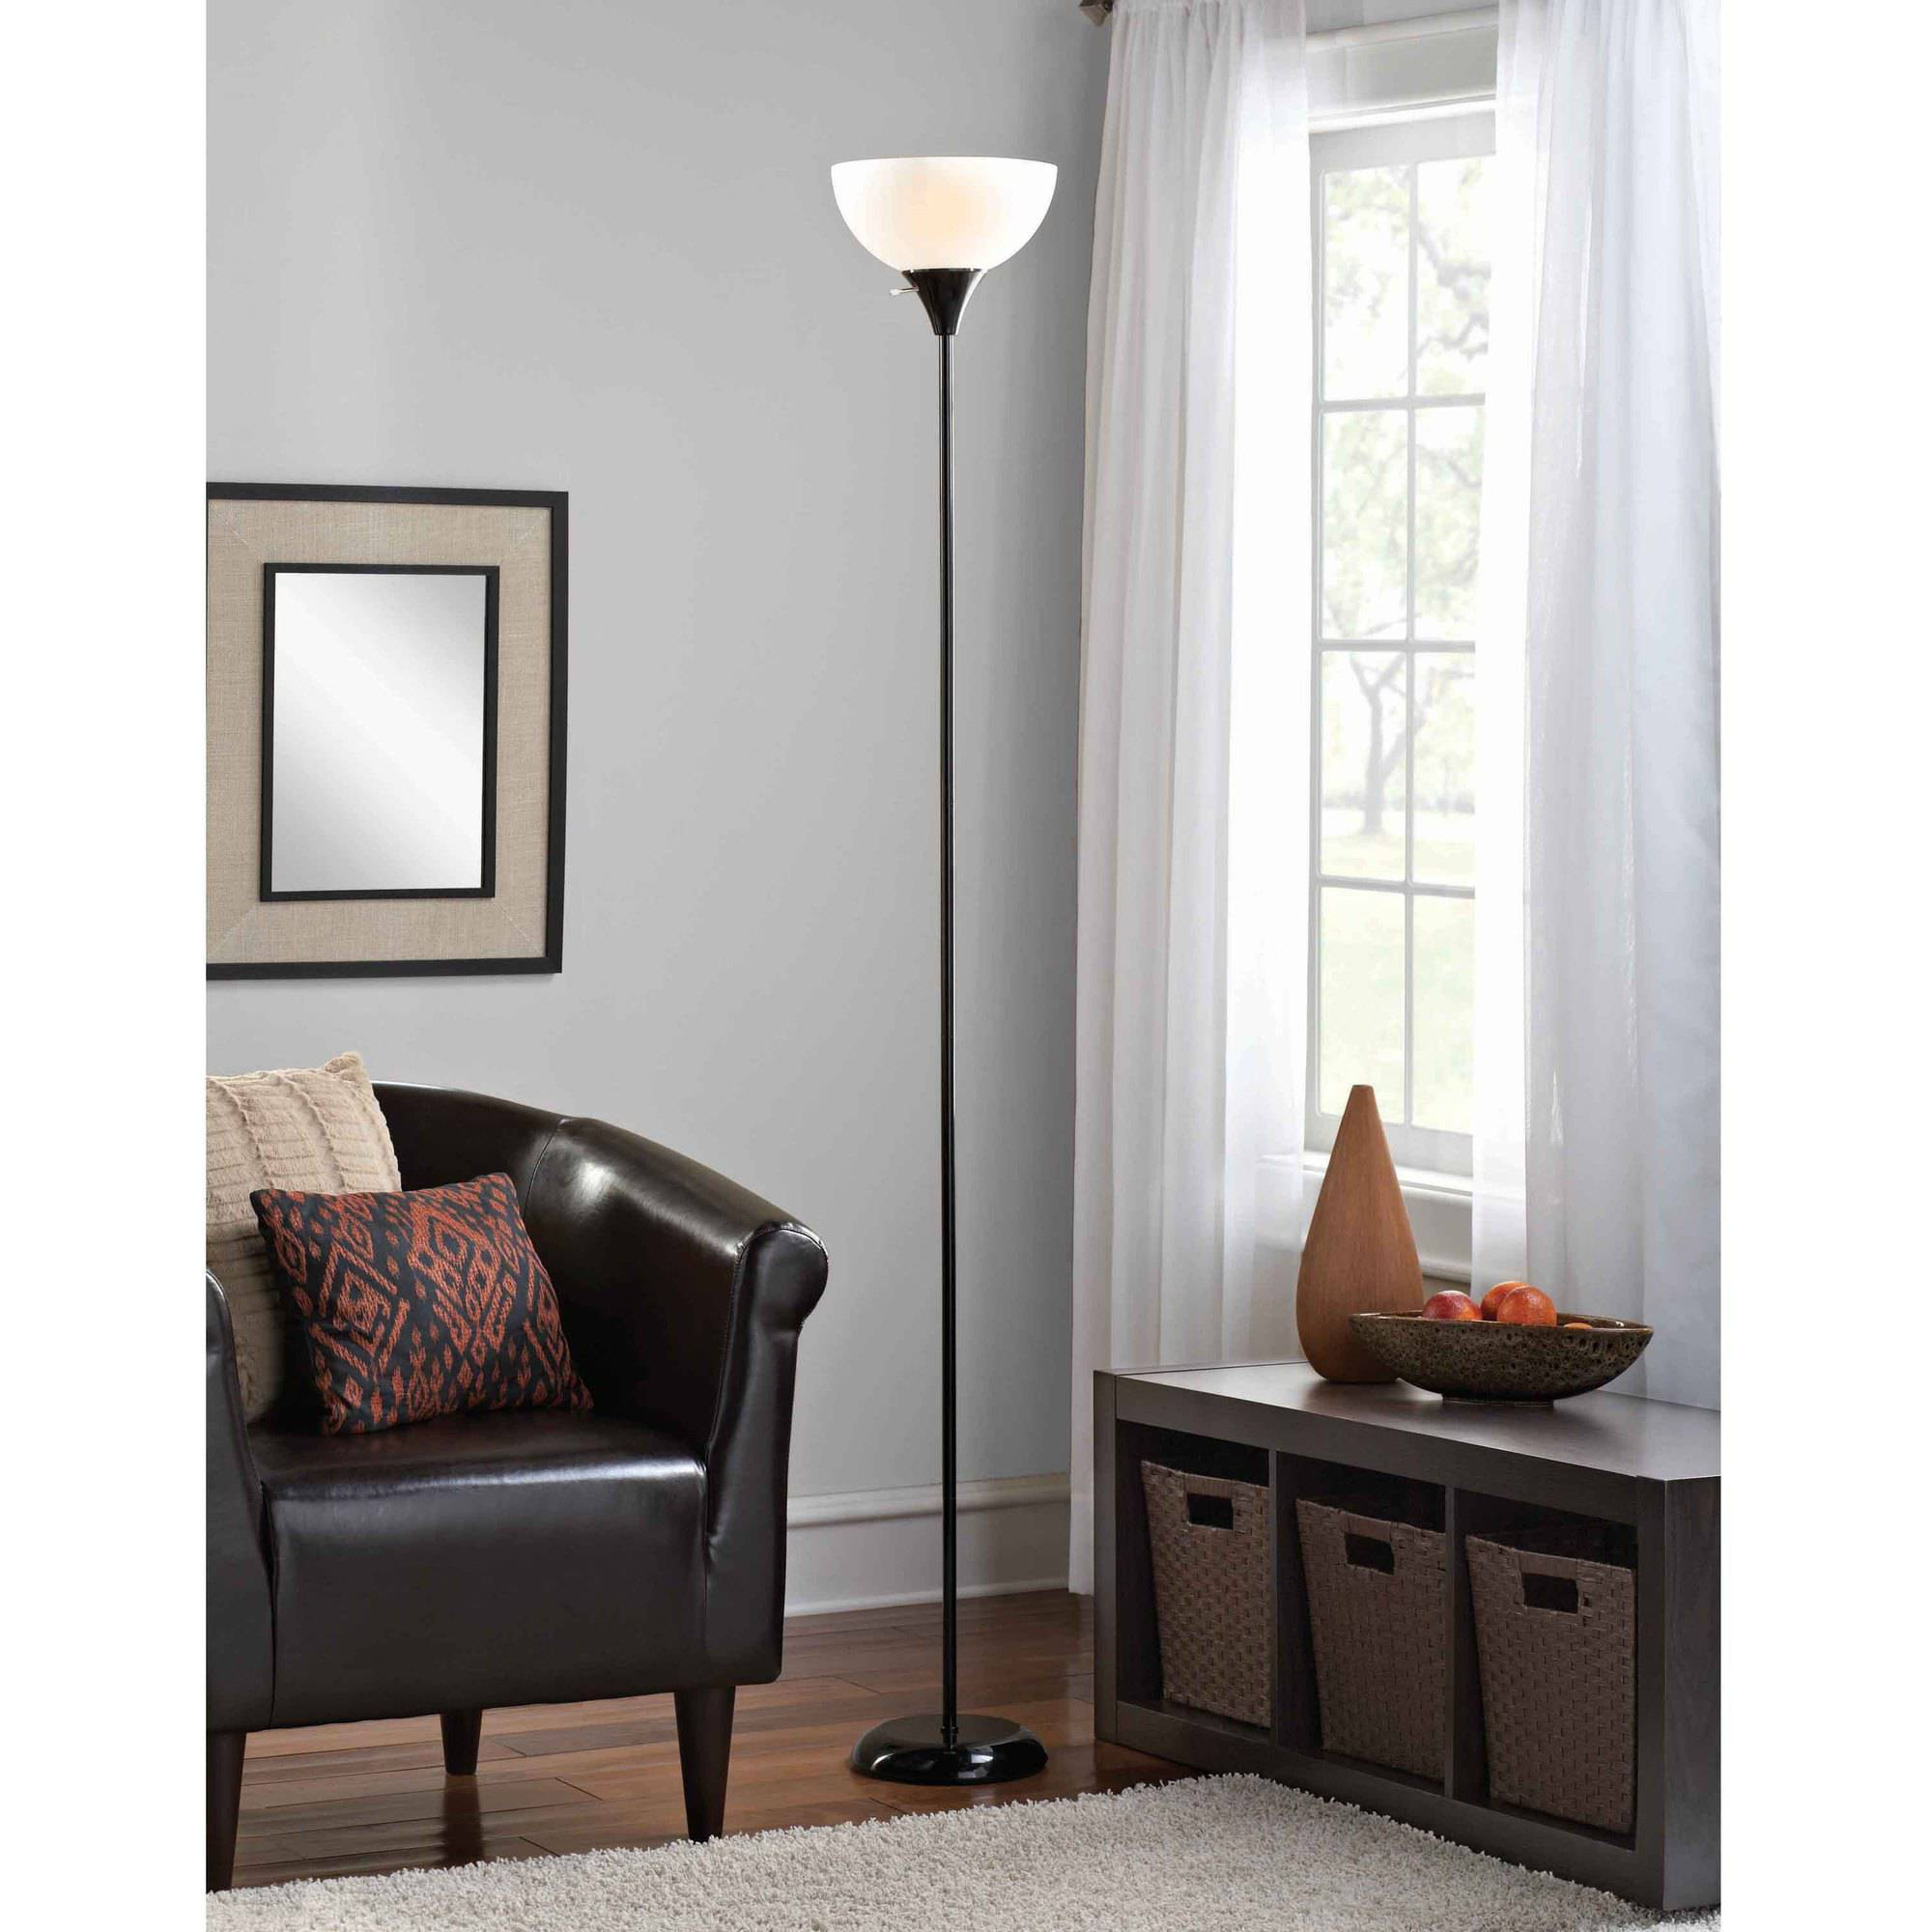 Mainstays Floor Lamp With Bulbs Included, Black   Walmart.com